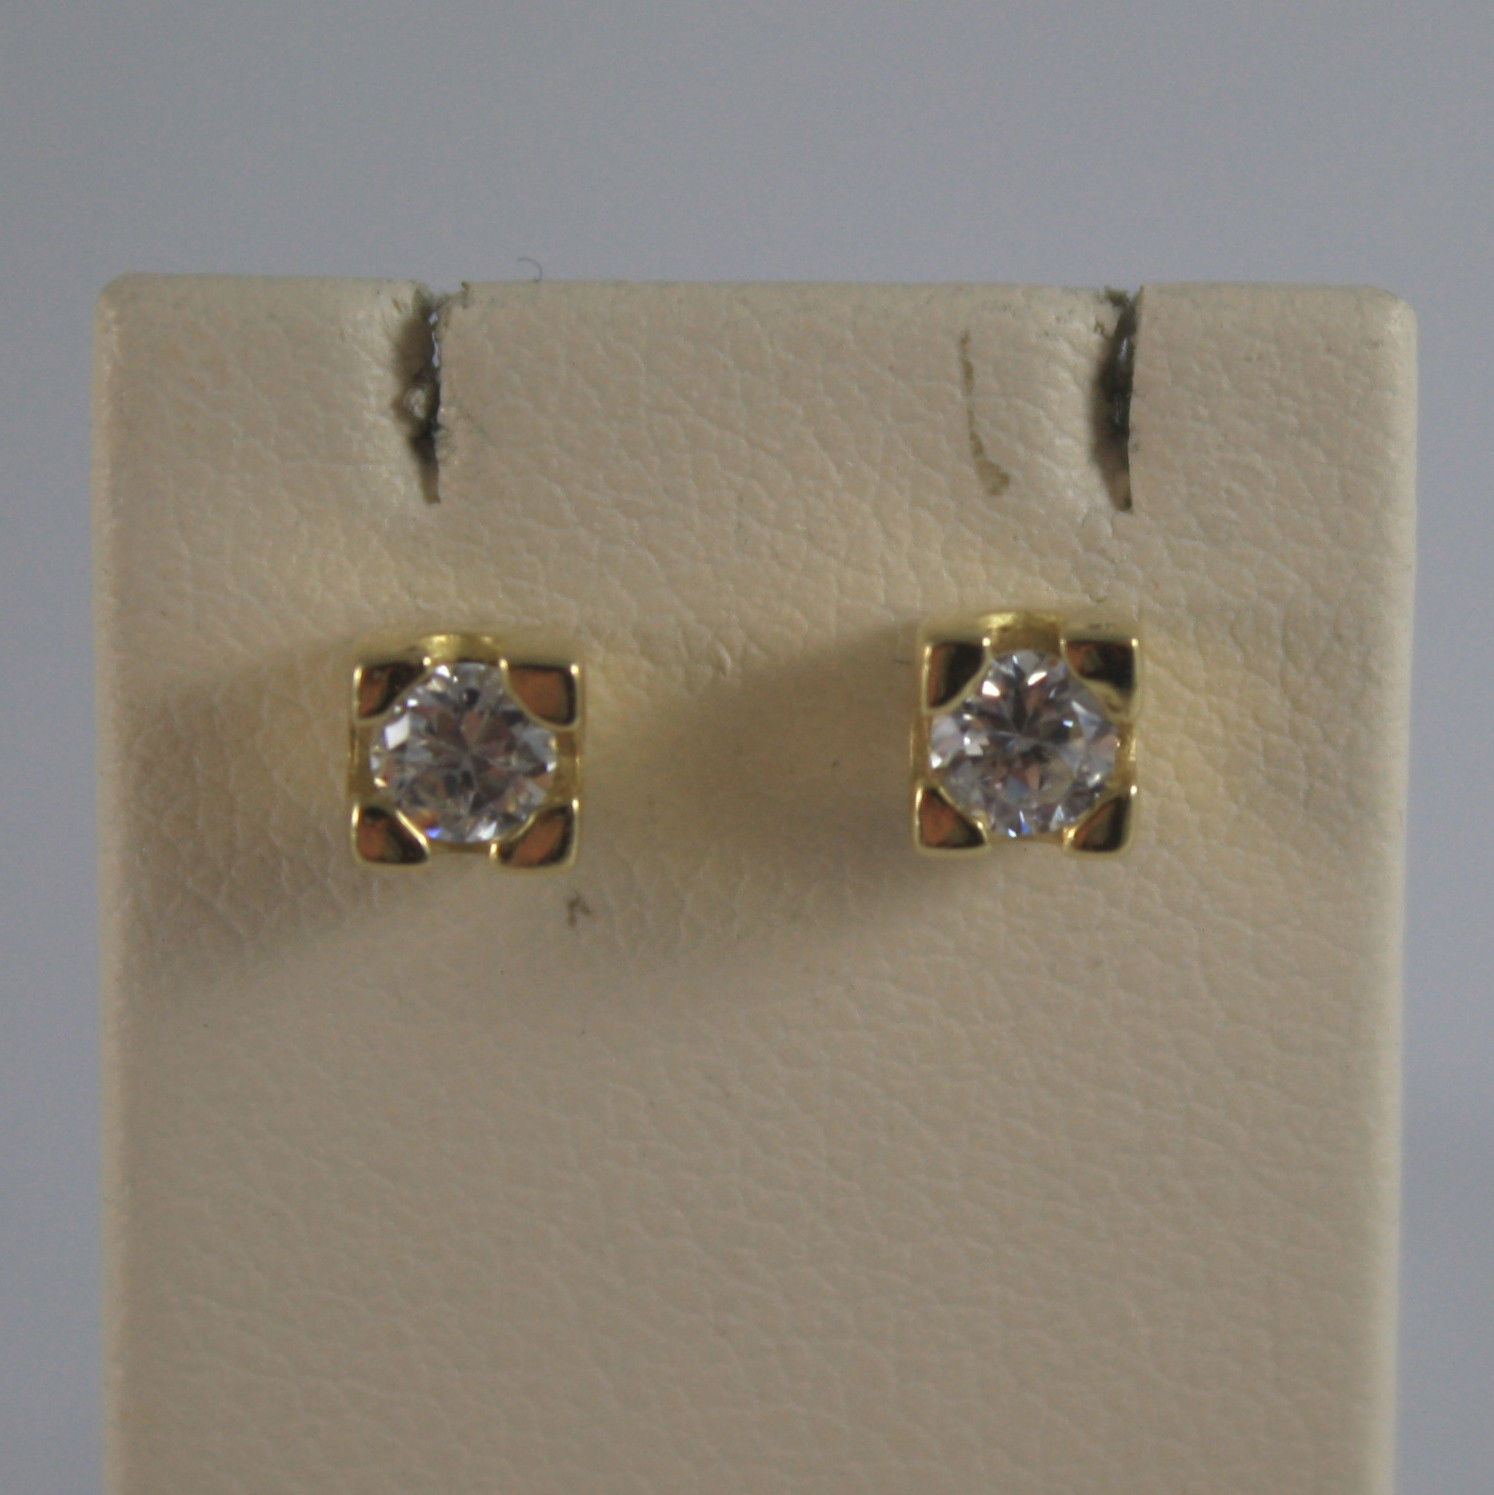 SOLID 18K YELLOW GOLD EARRINGS, ZIRCONIA, WIDTH 0,16 IN, MADE IN ITALY